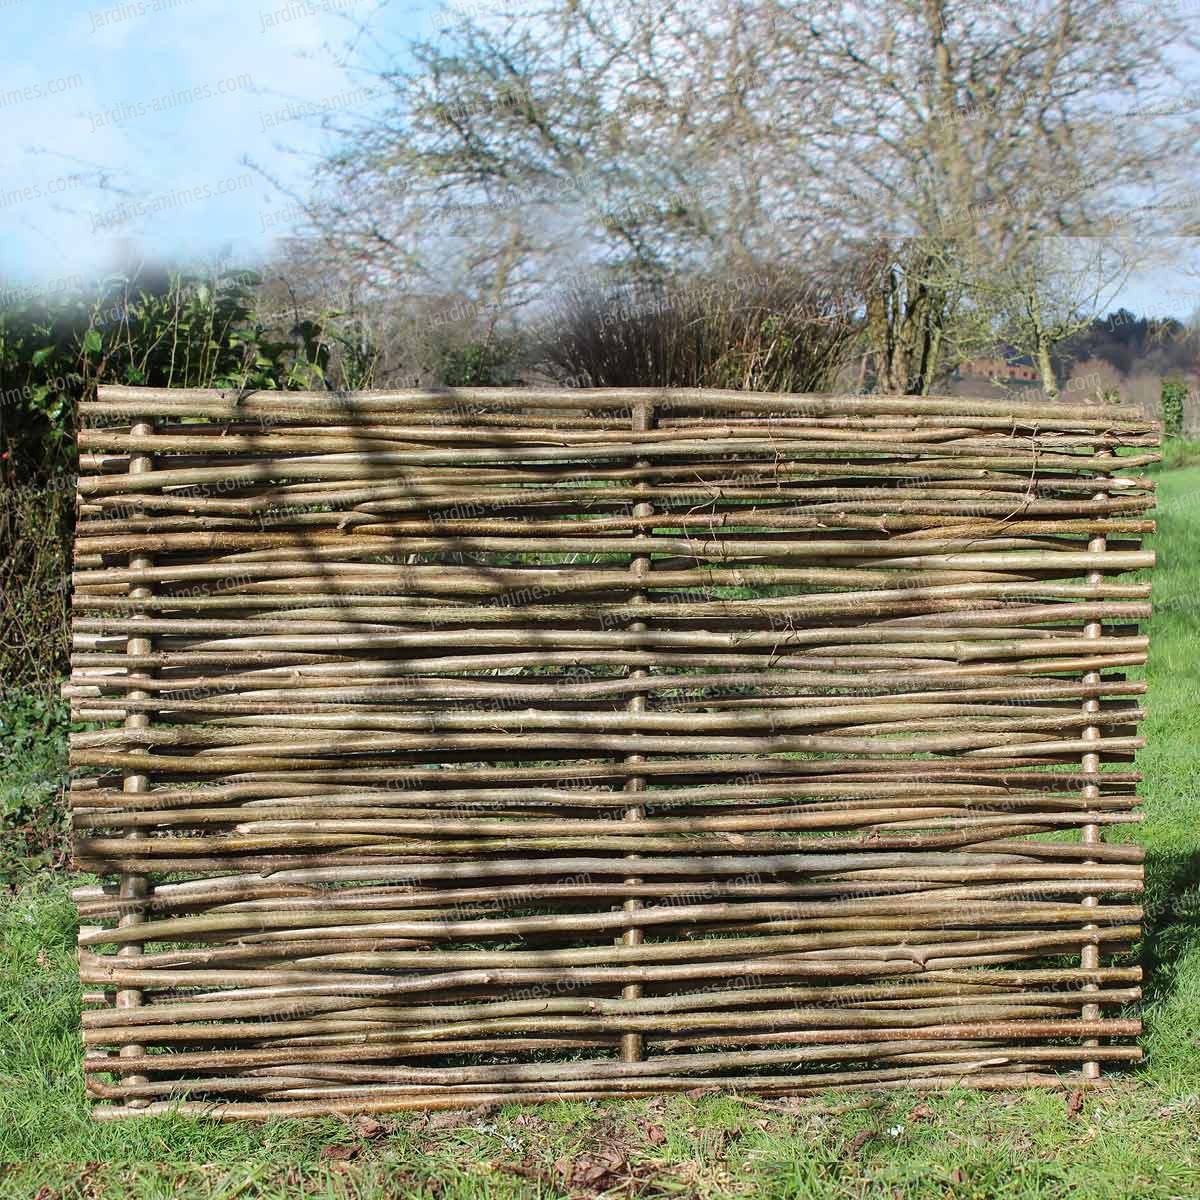 Barri re noisetier tressage horizontal cloture et occultation for Haie de jardin en belgique